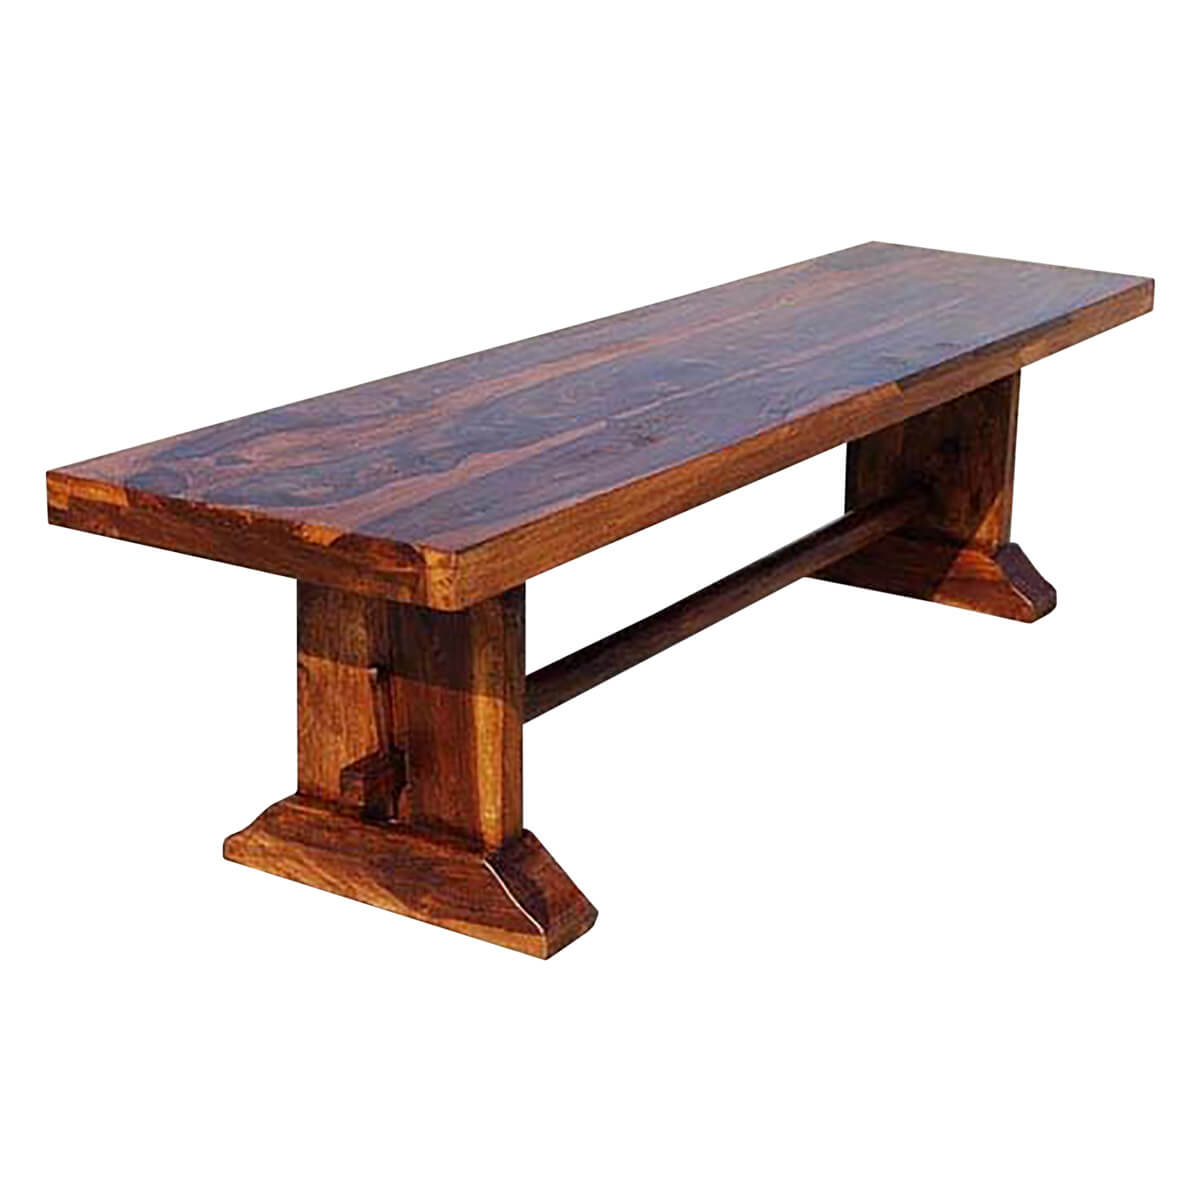 Simple wood bench design plans online woodworking plans Oak bench